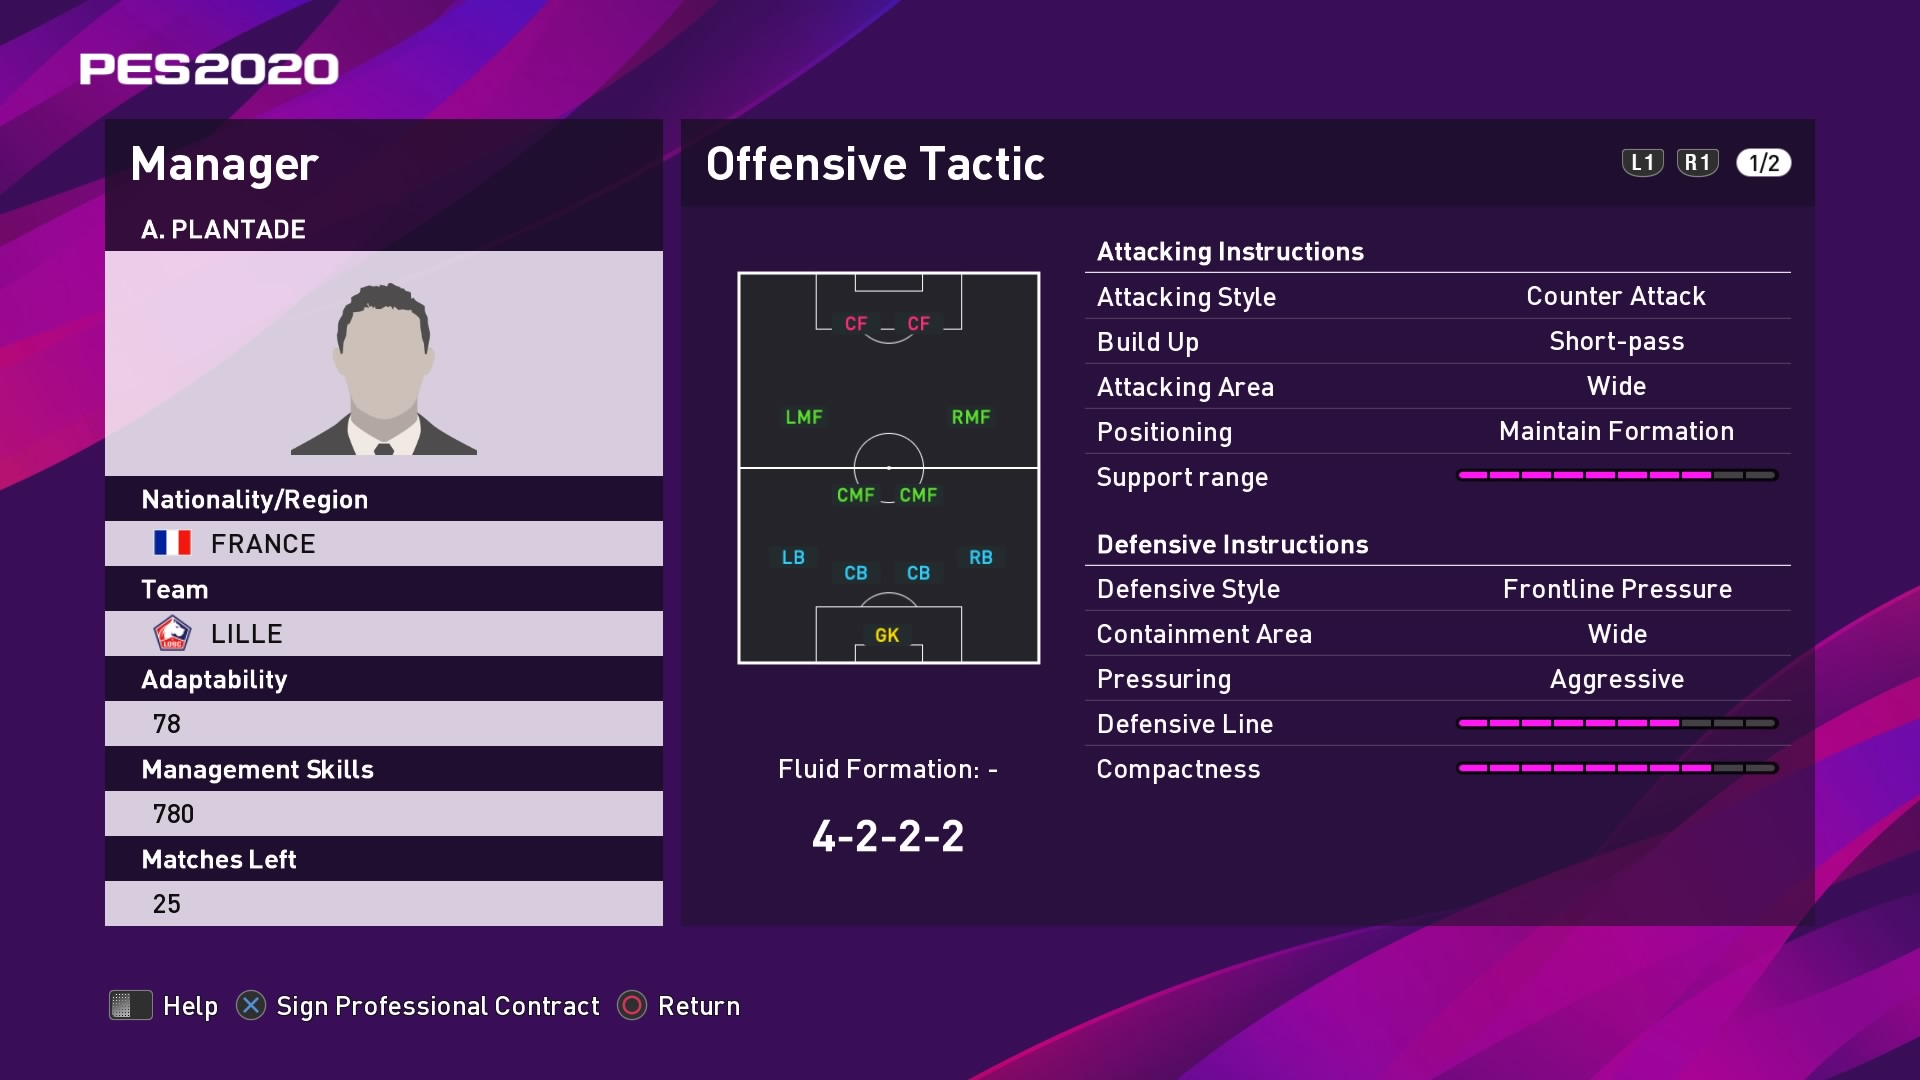 A. Plantade (Christophe Galtier) Offensive Tactic in PES 2020 myClub